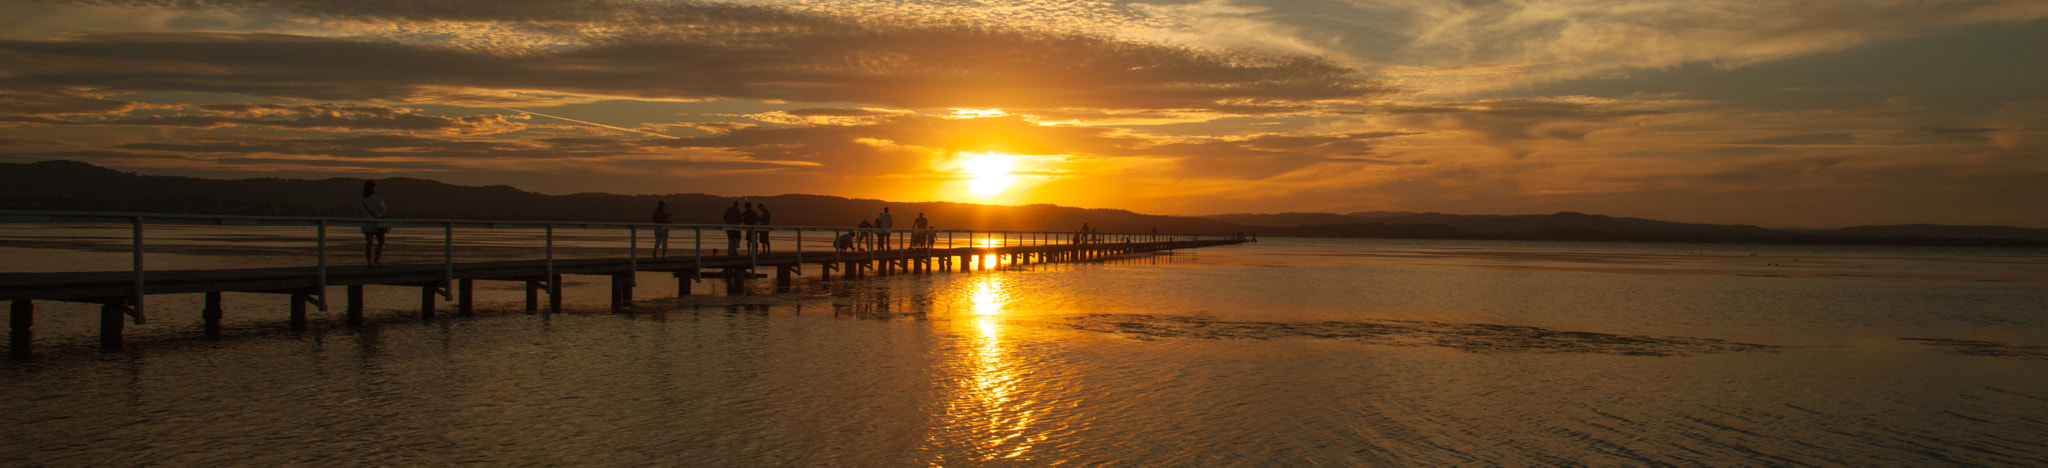 Photograph Sunset at Long Jetty, The Entrance by Howard Tang on 500px